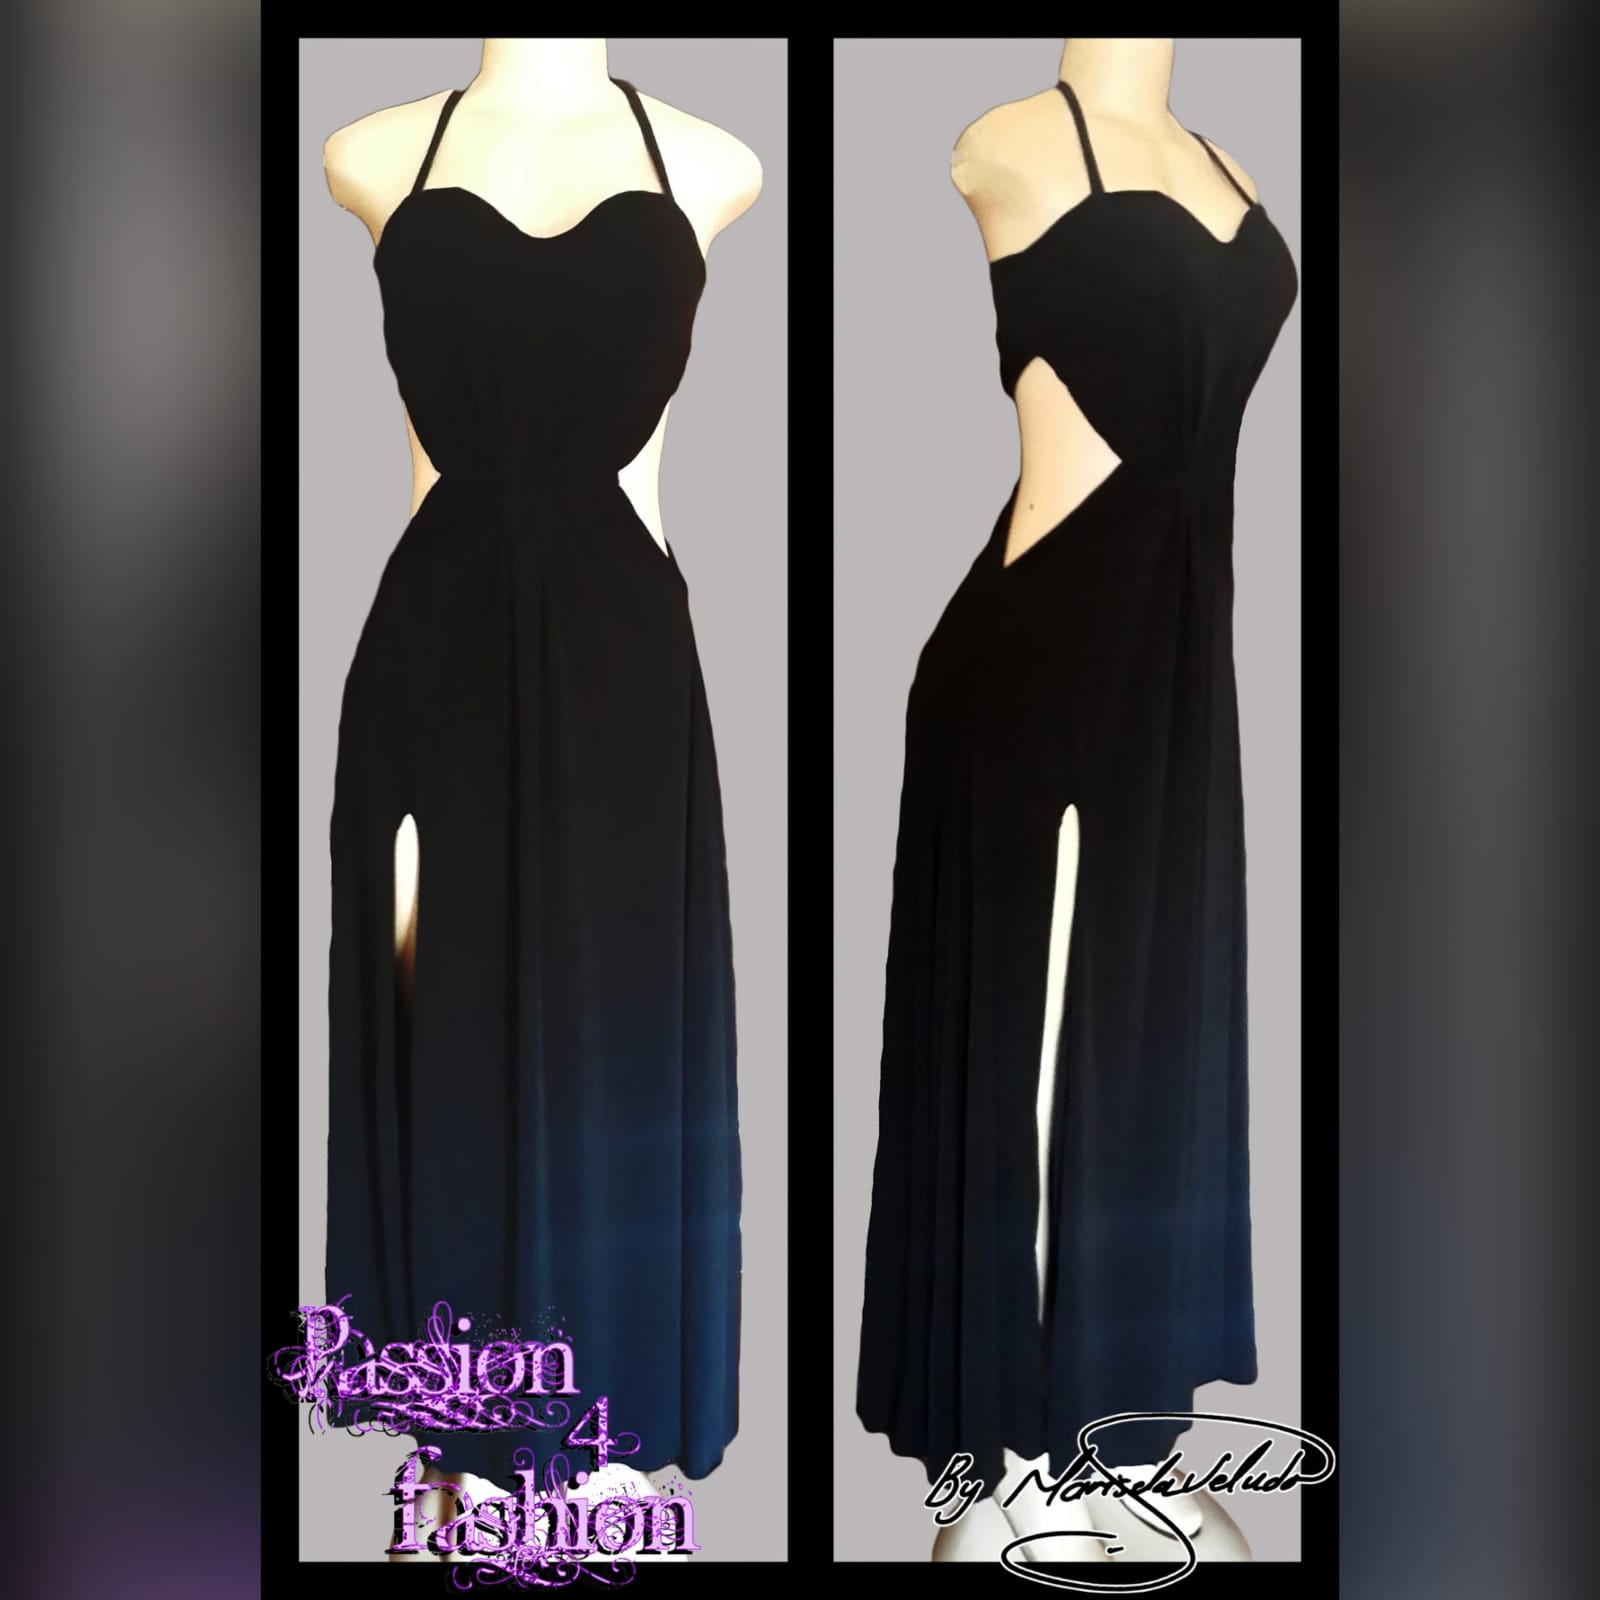 Black long flowy evening dress 3 black long flowy evening dress with side tummy openings, a slit and halter neck string